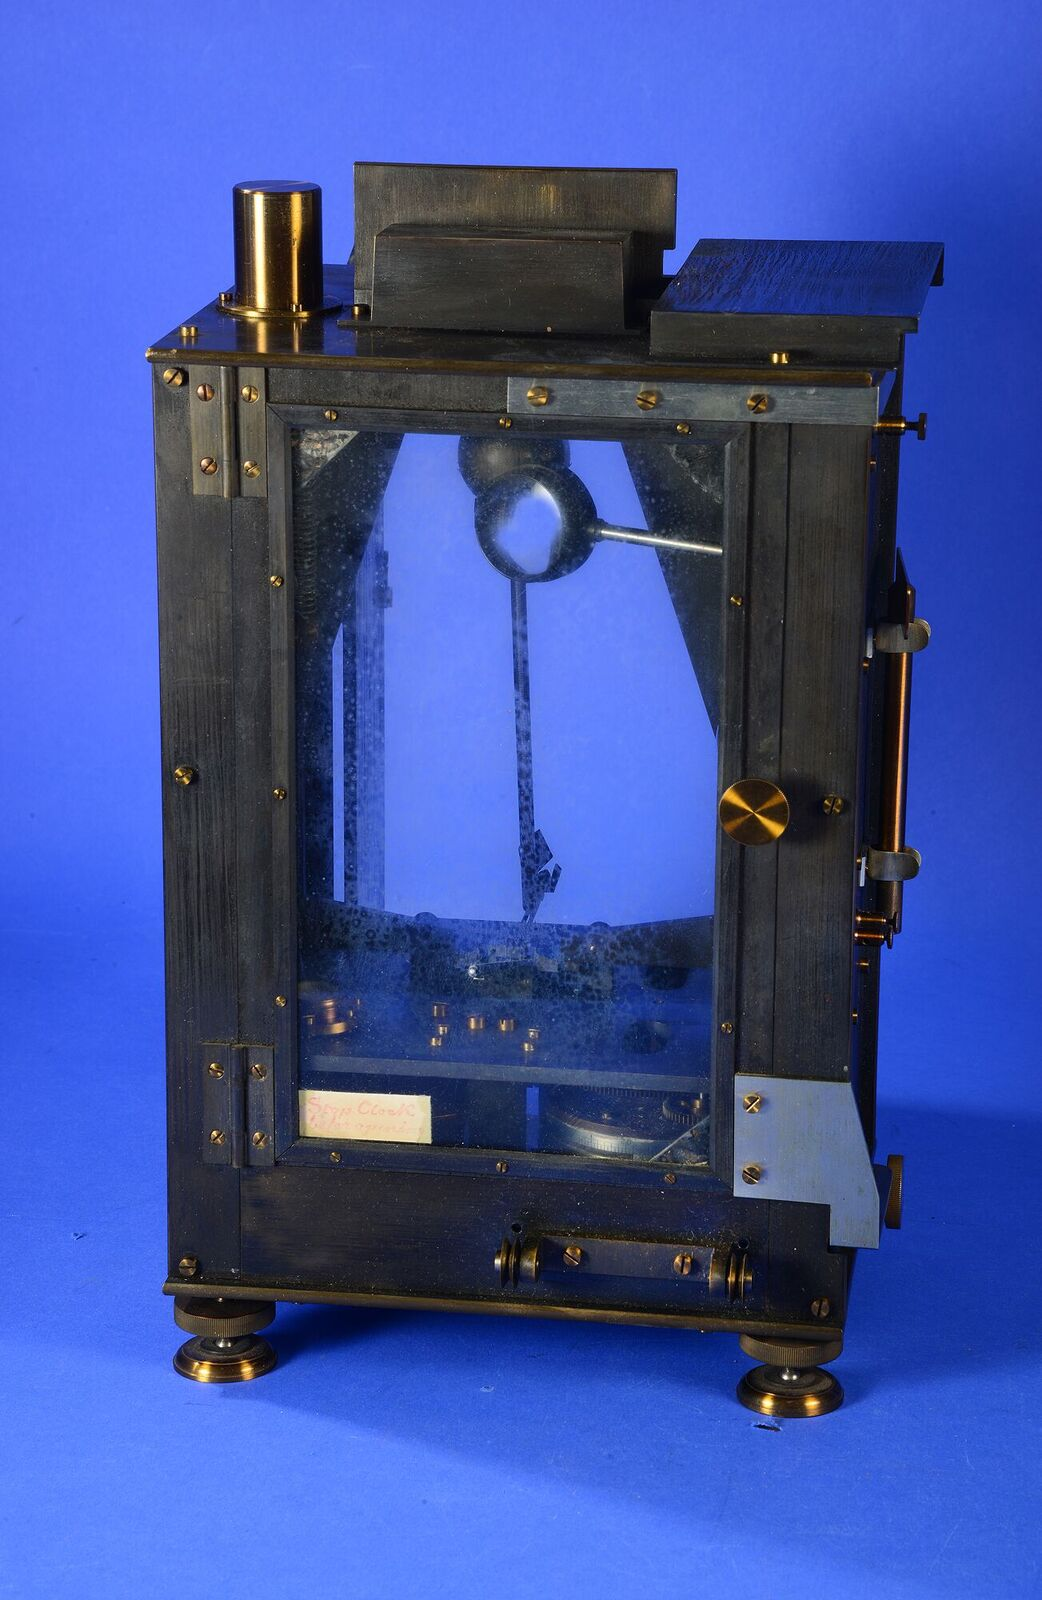 Color photo of a scientific instrument in front of a blue background, instrument is similar in appea